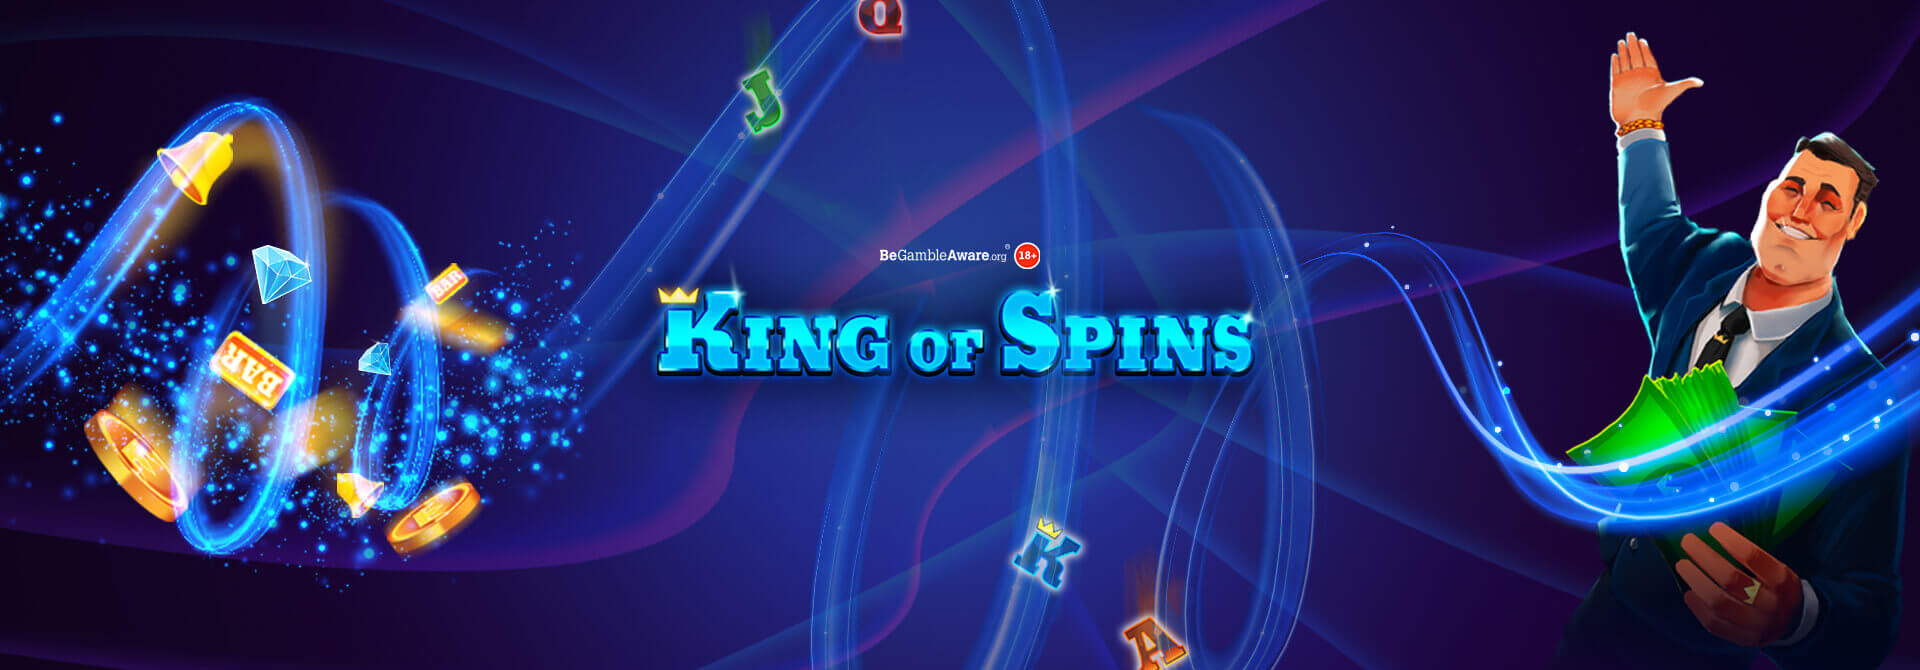 Take the stage with King of Spins on PocketWin